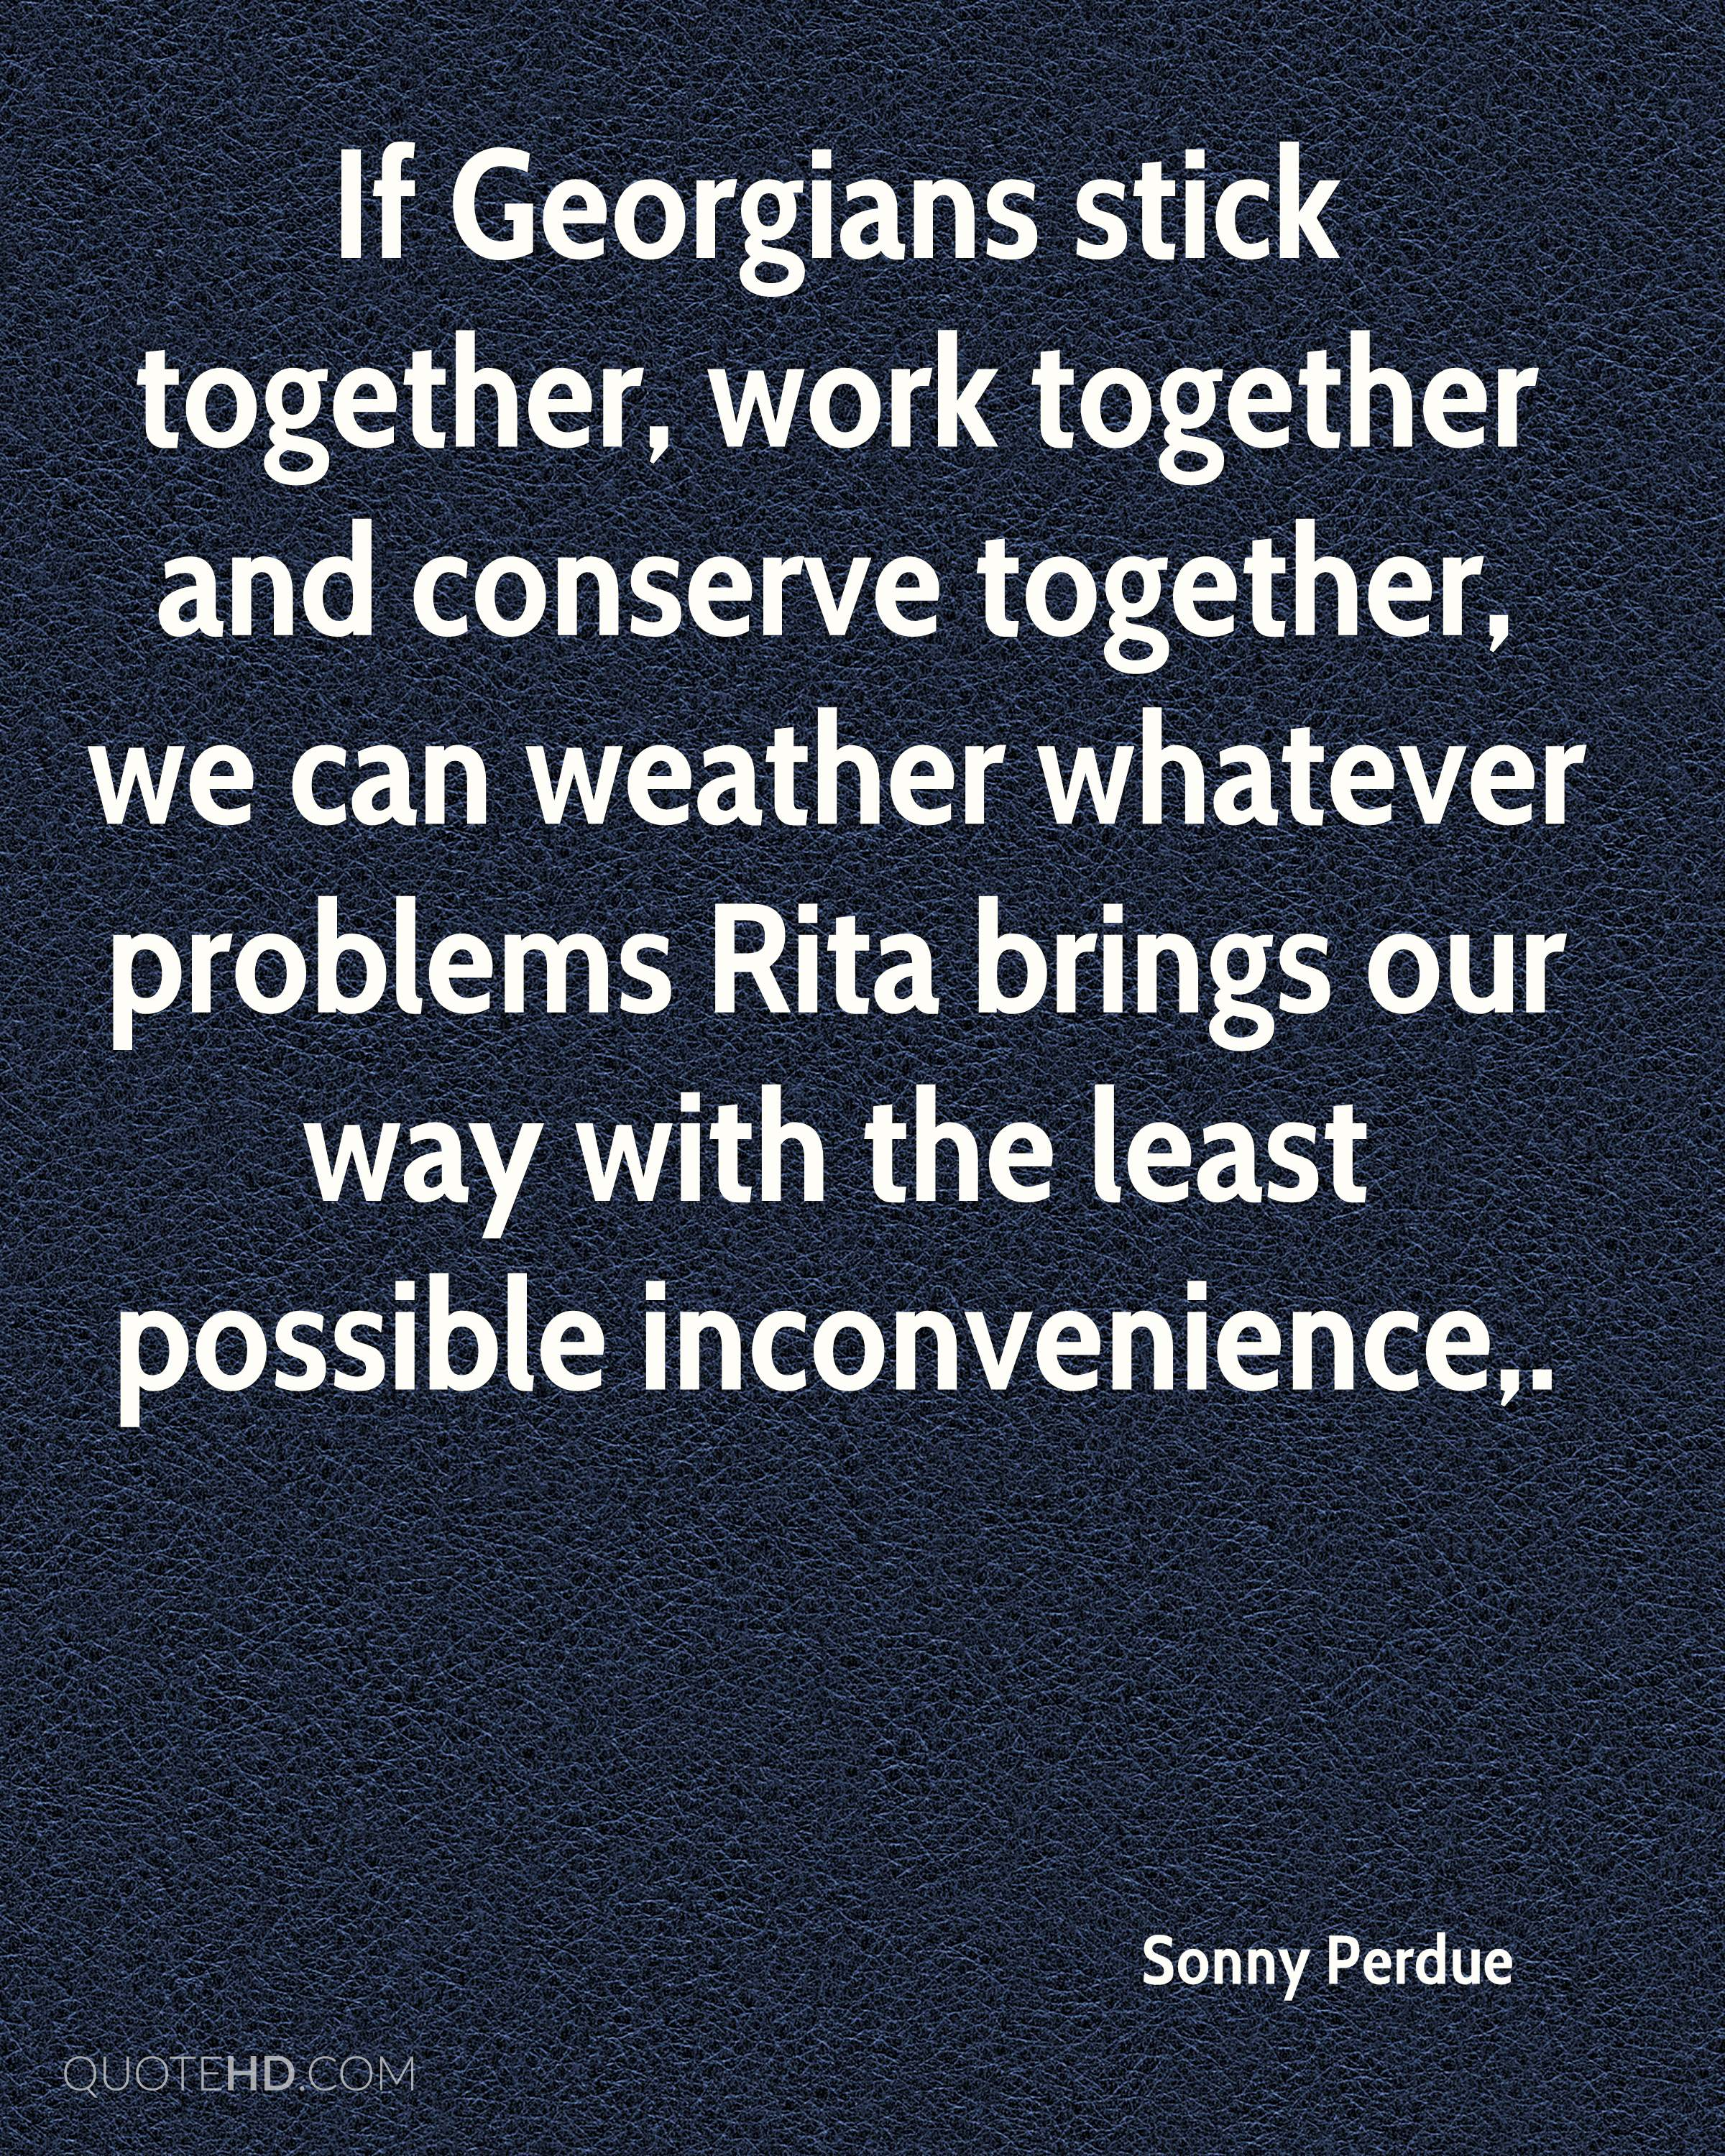 If Georgians stick together, work together and conserve together, we can weather whatever problems Rita brings our way with the least possible inconvenience.